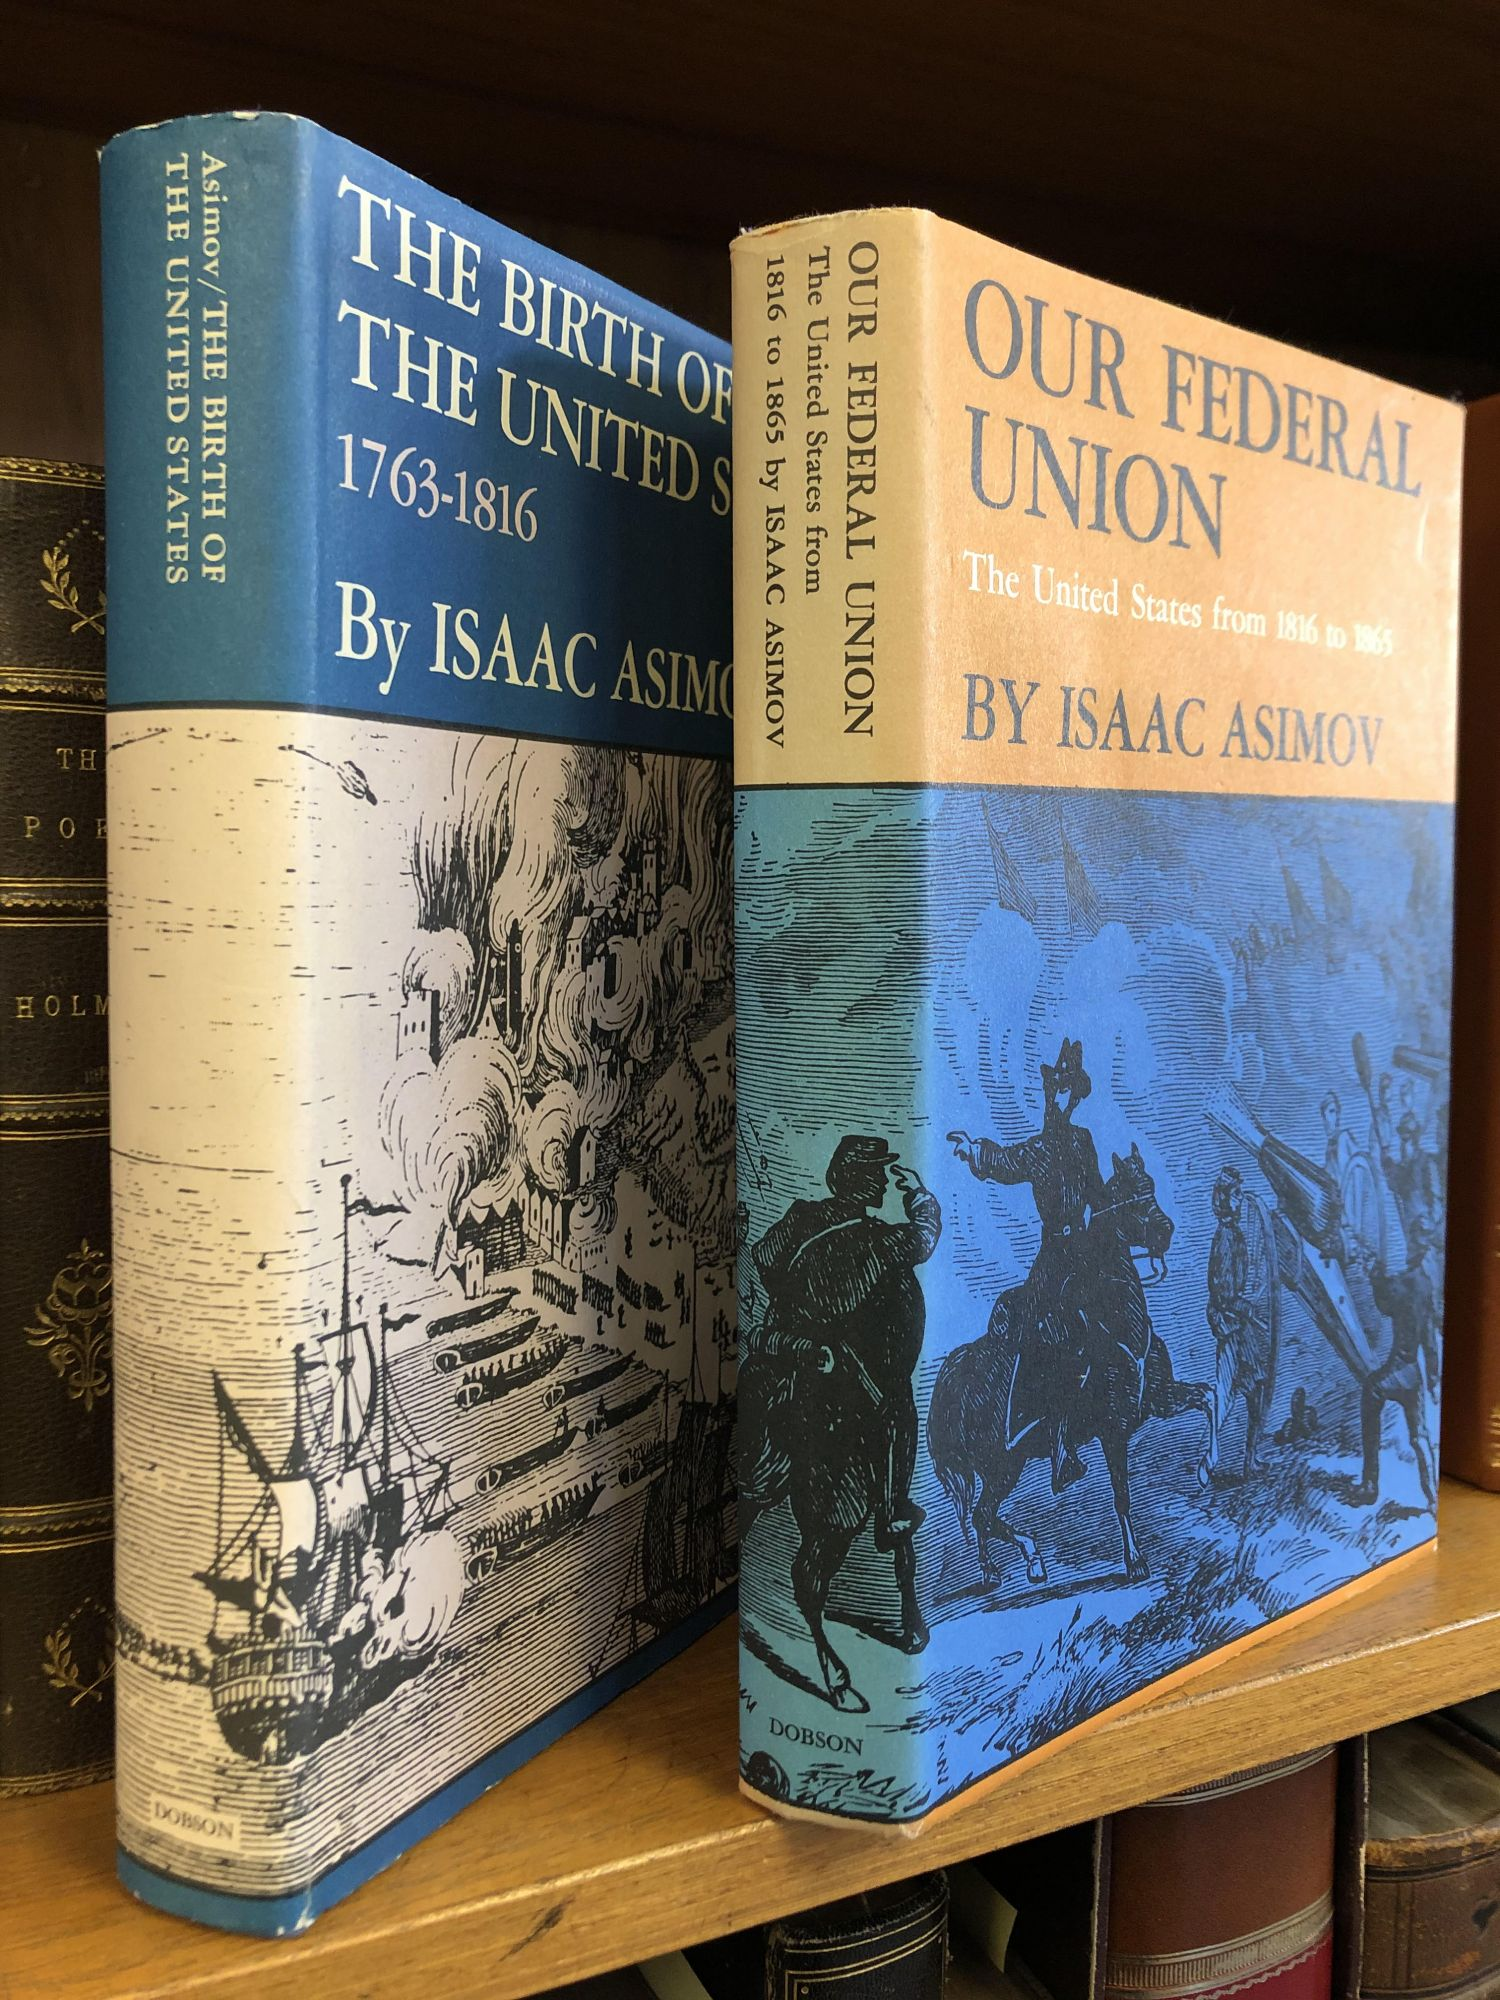 THE BIRTH OF THE UNITED STATES, 1763-1816/OUR FEDERAL UNION: THE UNITED STATES FROM 1816-1865 [TWO VOLUMES ONLY]. Isaac Asimov.